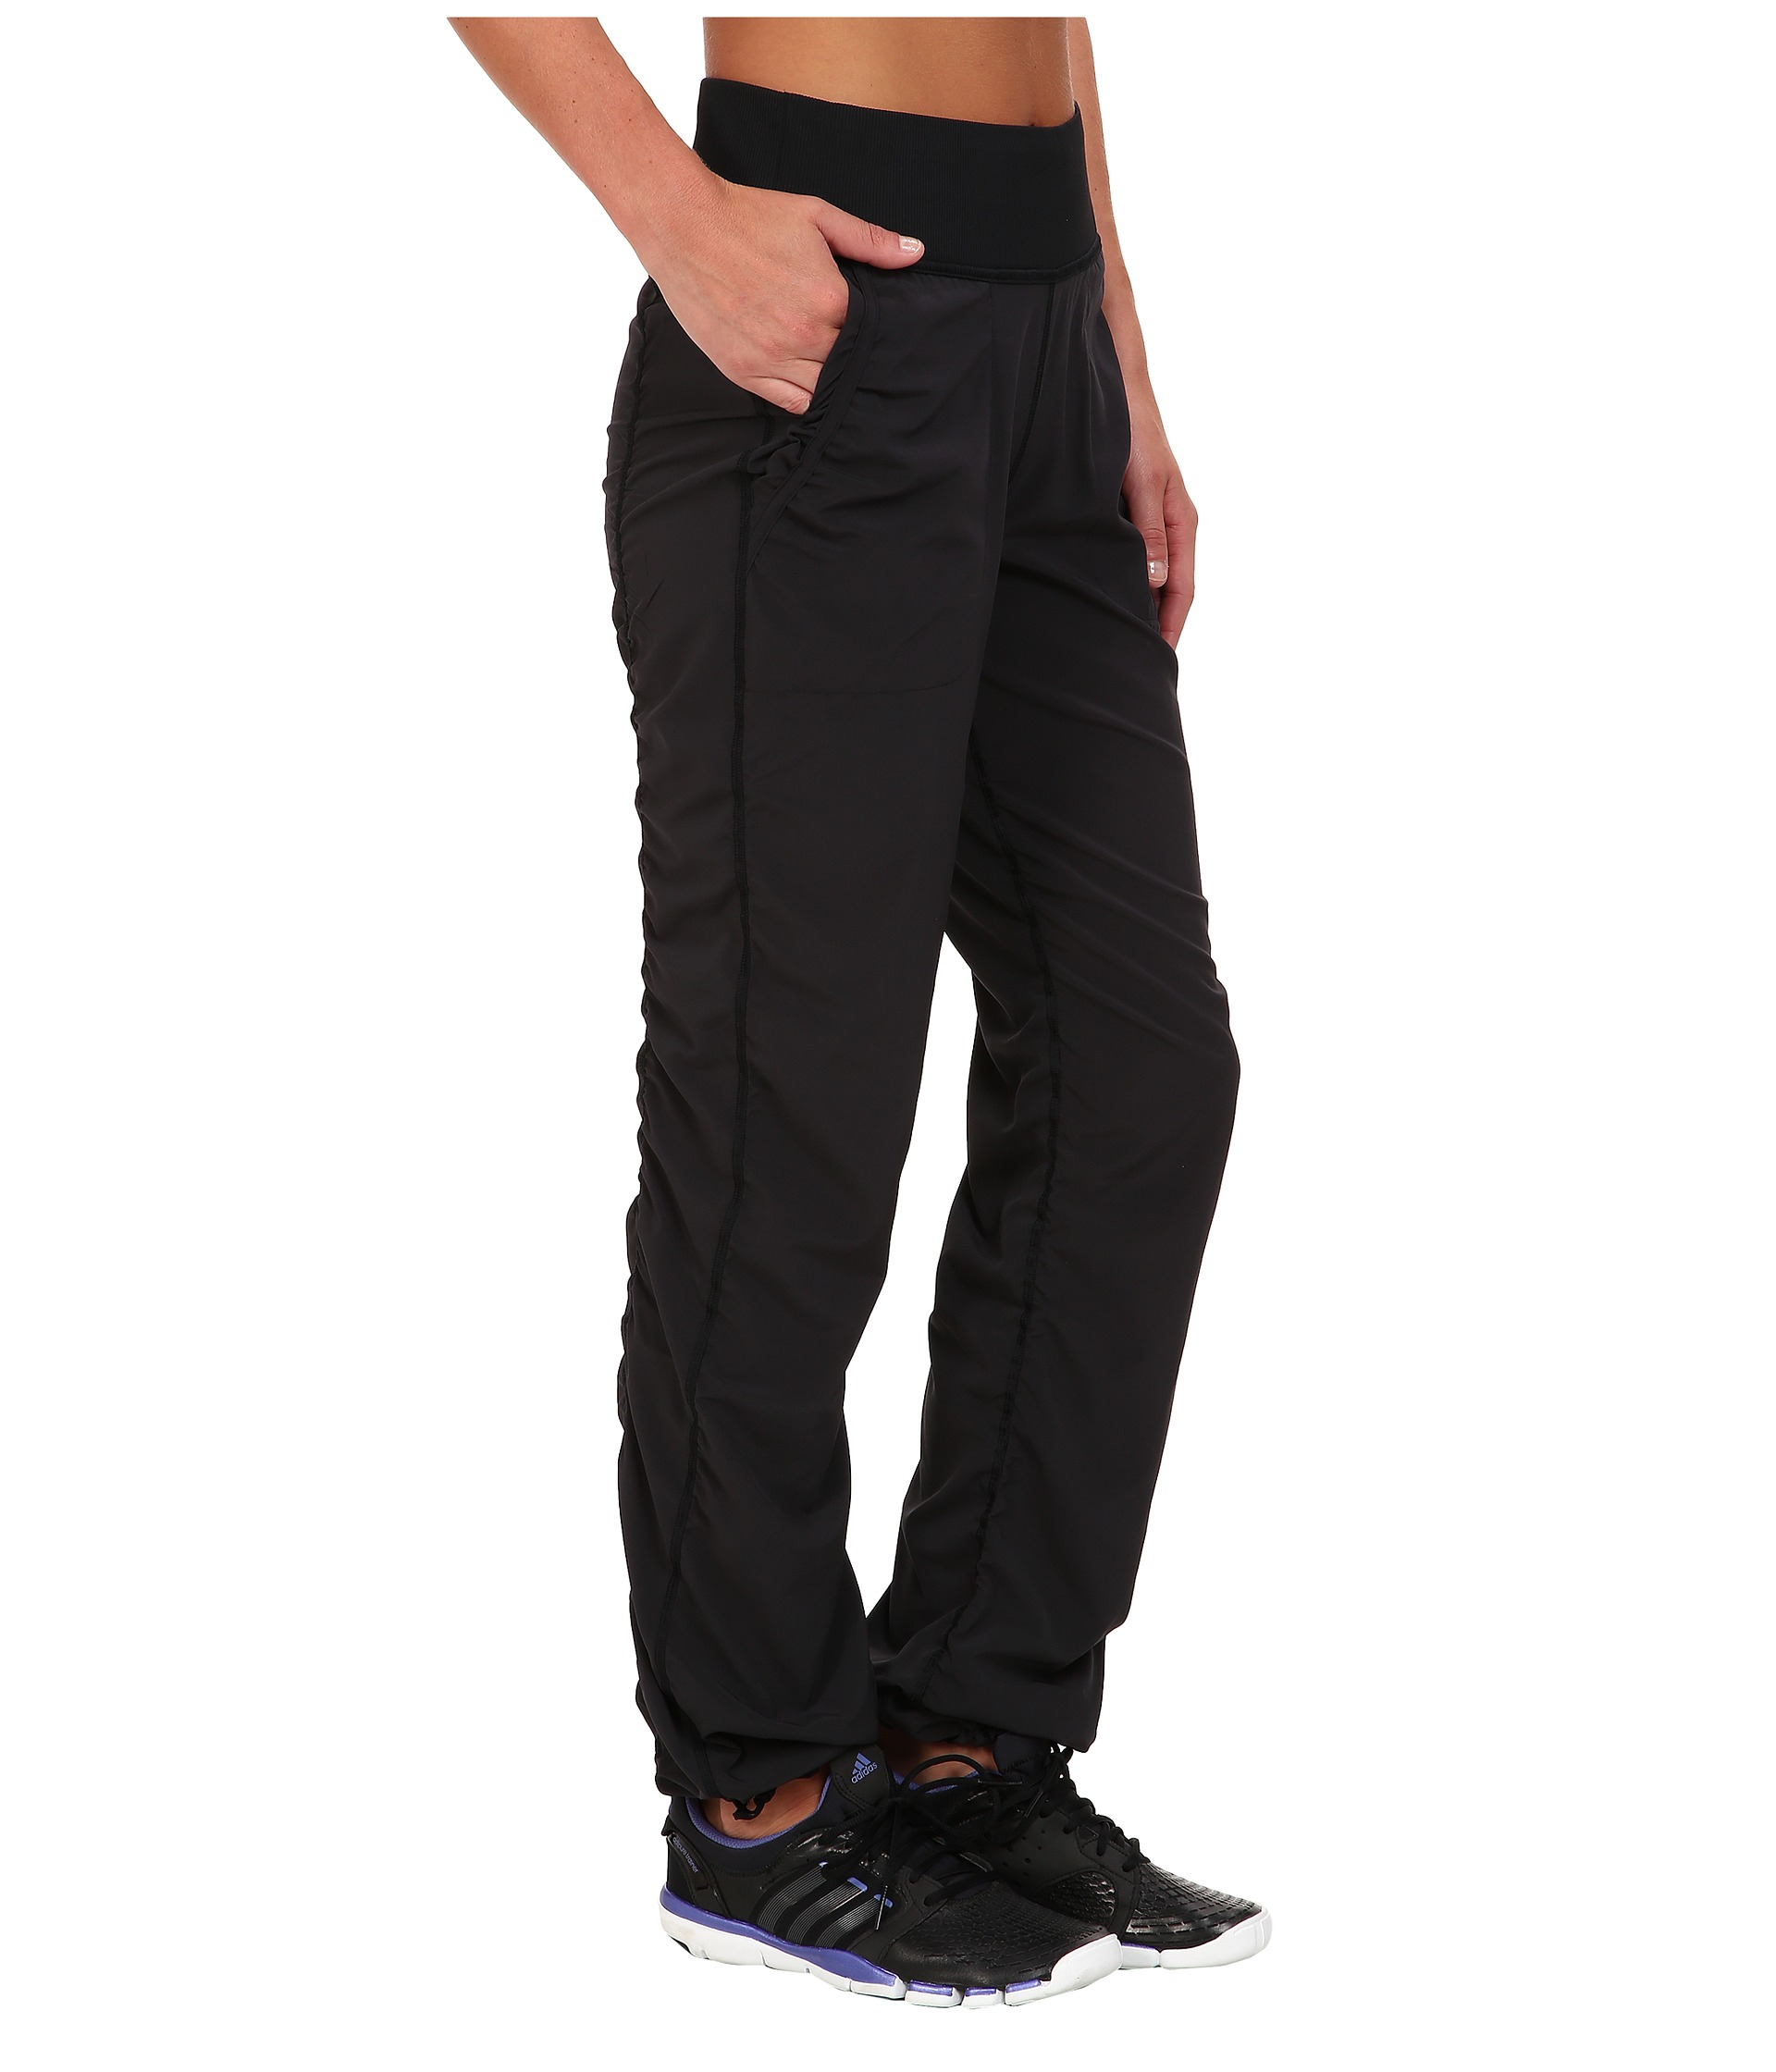 pants pant training welded isaora moving products comforter black in comfort